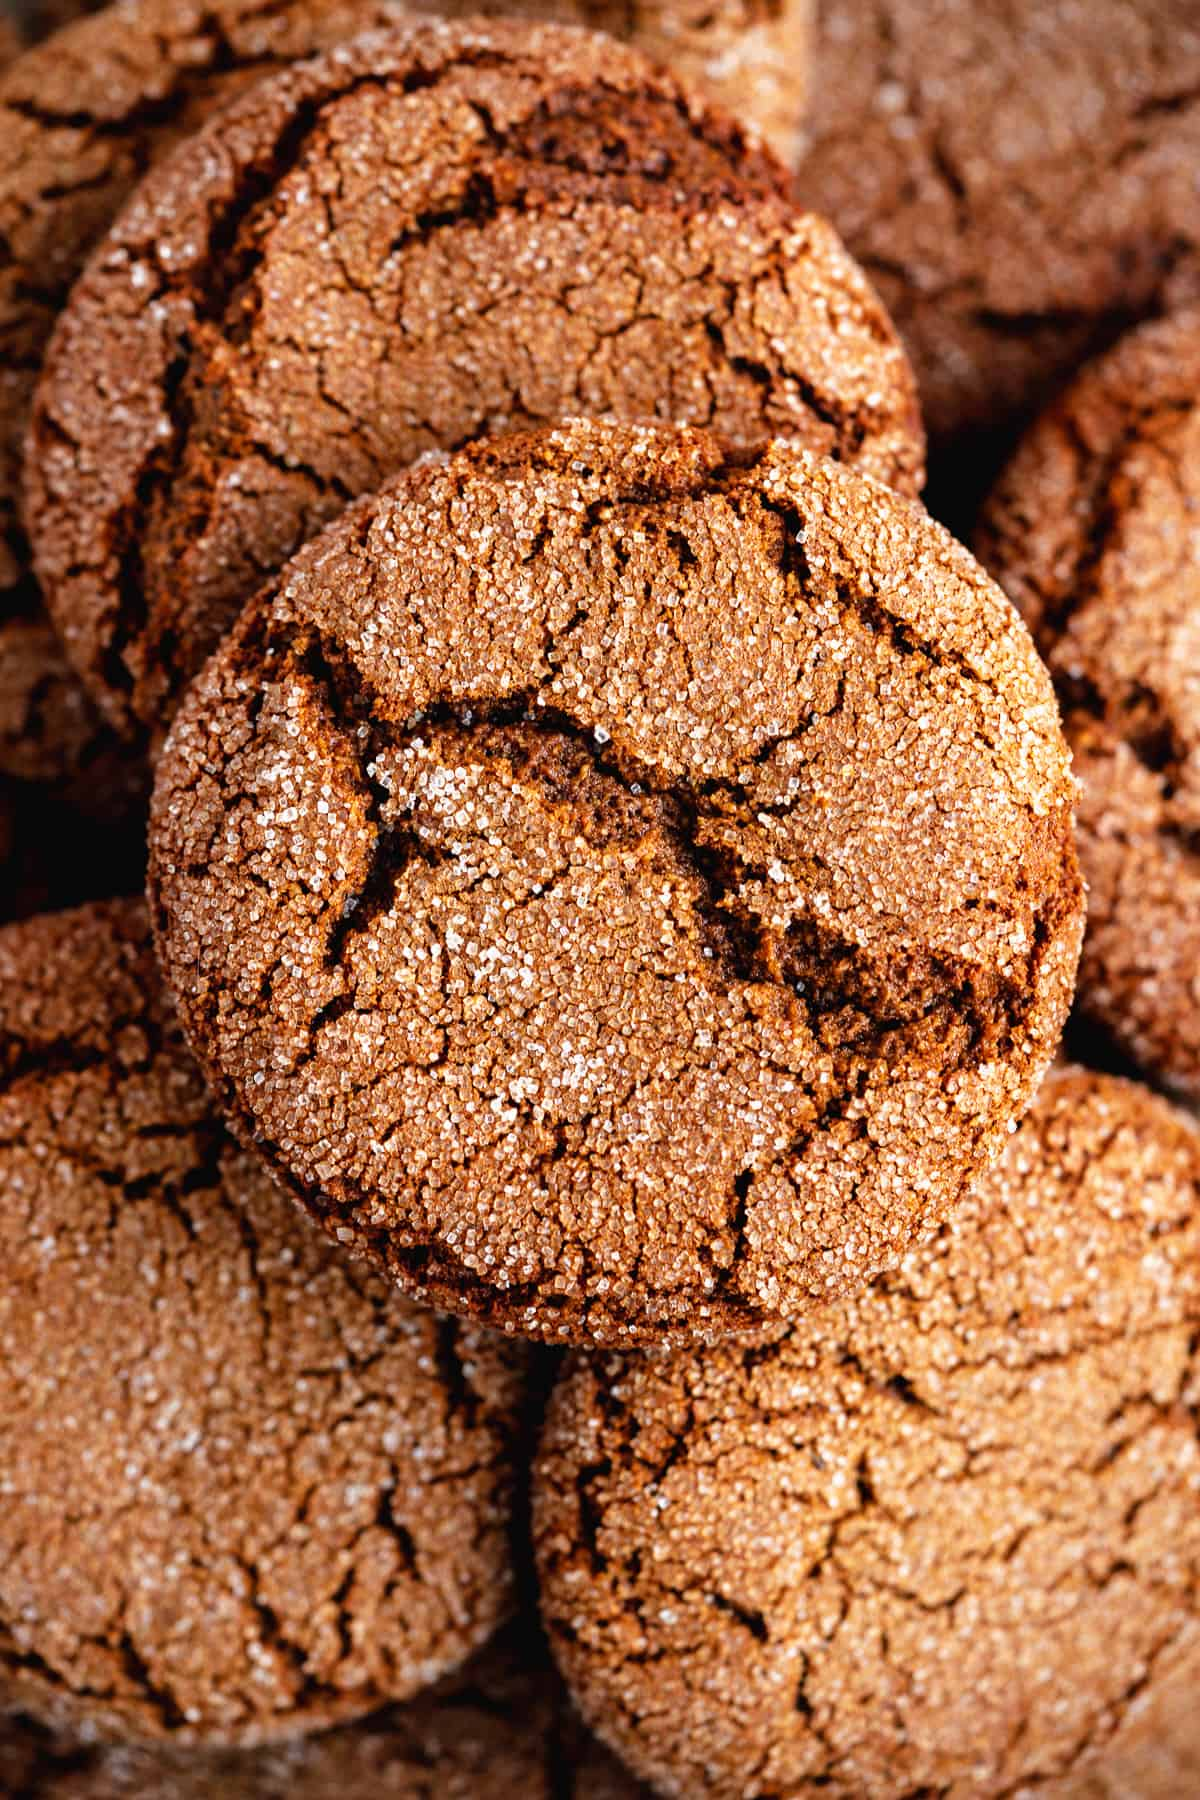 Closeup photo of a plate of Soft and Chewy Ginger Snap Cookies that highlights the texture and inside of each cookie.